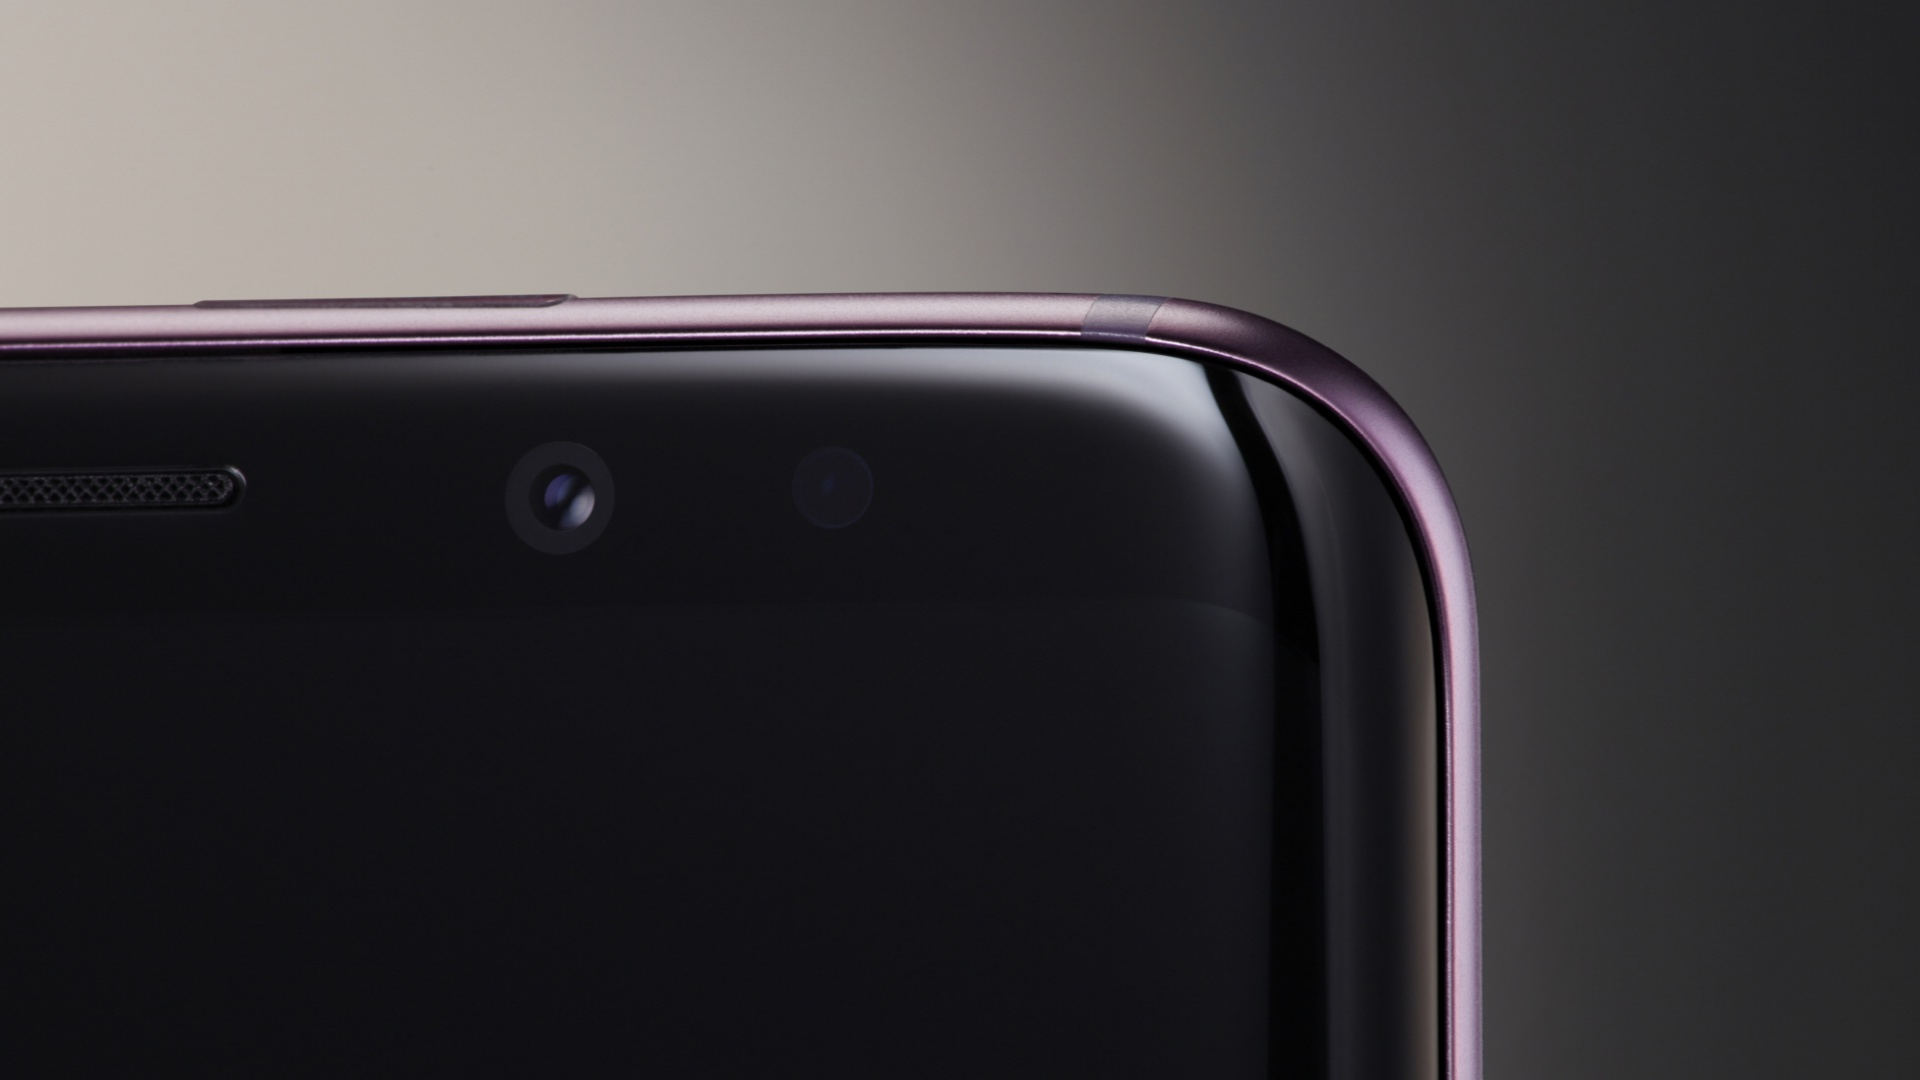 Variant of Galaxy S10 to Offer 5G, Four Rear Cameras